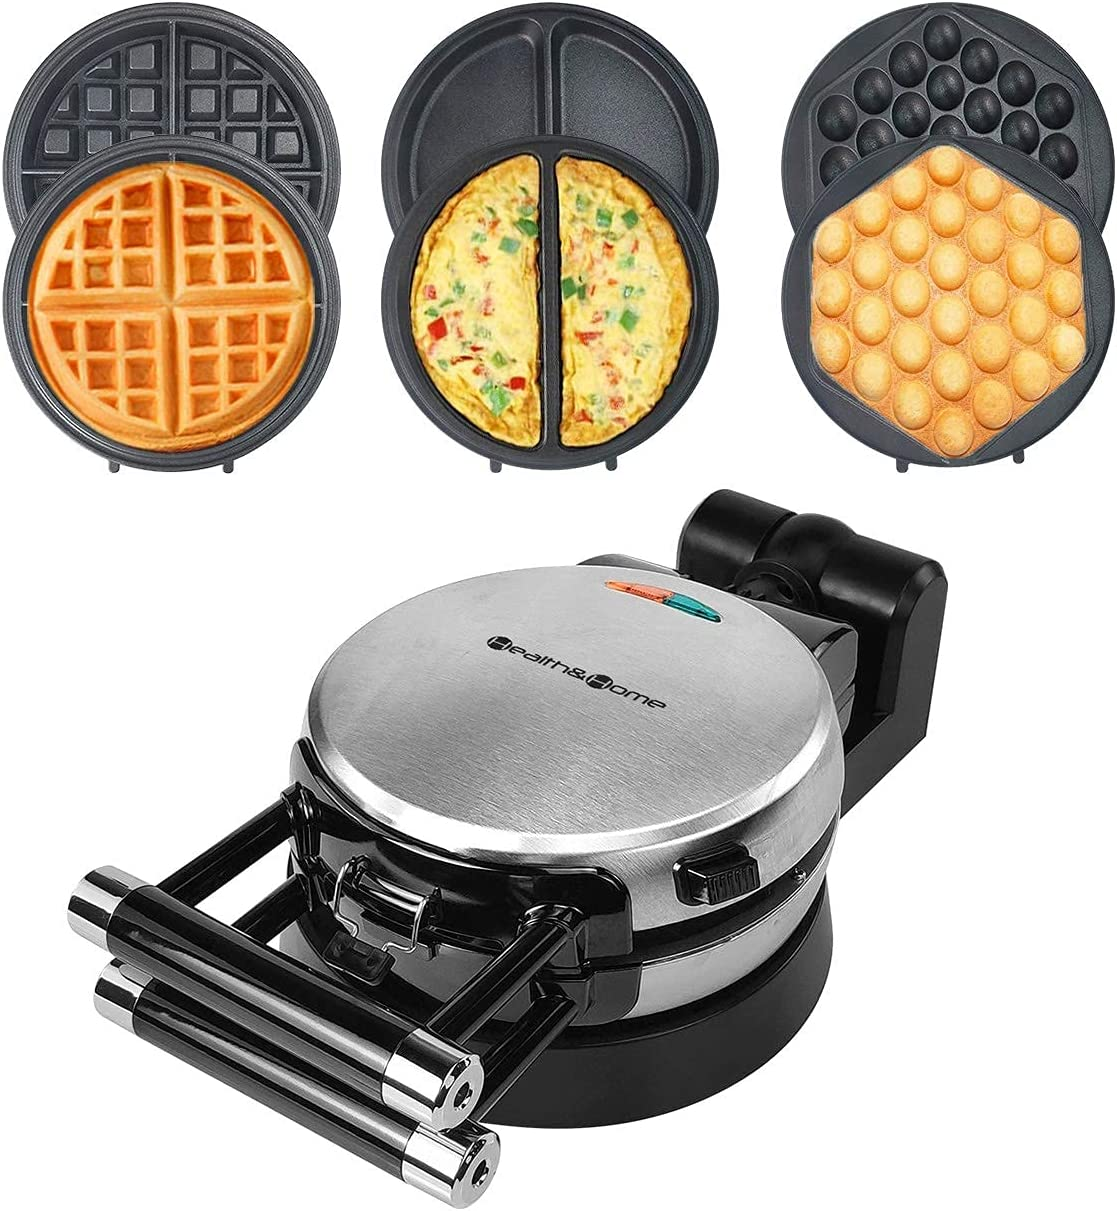 Health and Home 3-in-1 Waffle Maker, Omelet Maker, Egg Waffle Maker, 3 Removable Nonstick Baking Plates, Upgraded 360 Rotating Belgian Waffle Maker (Renewed)